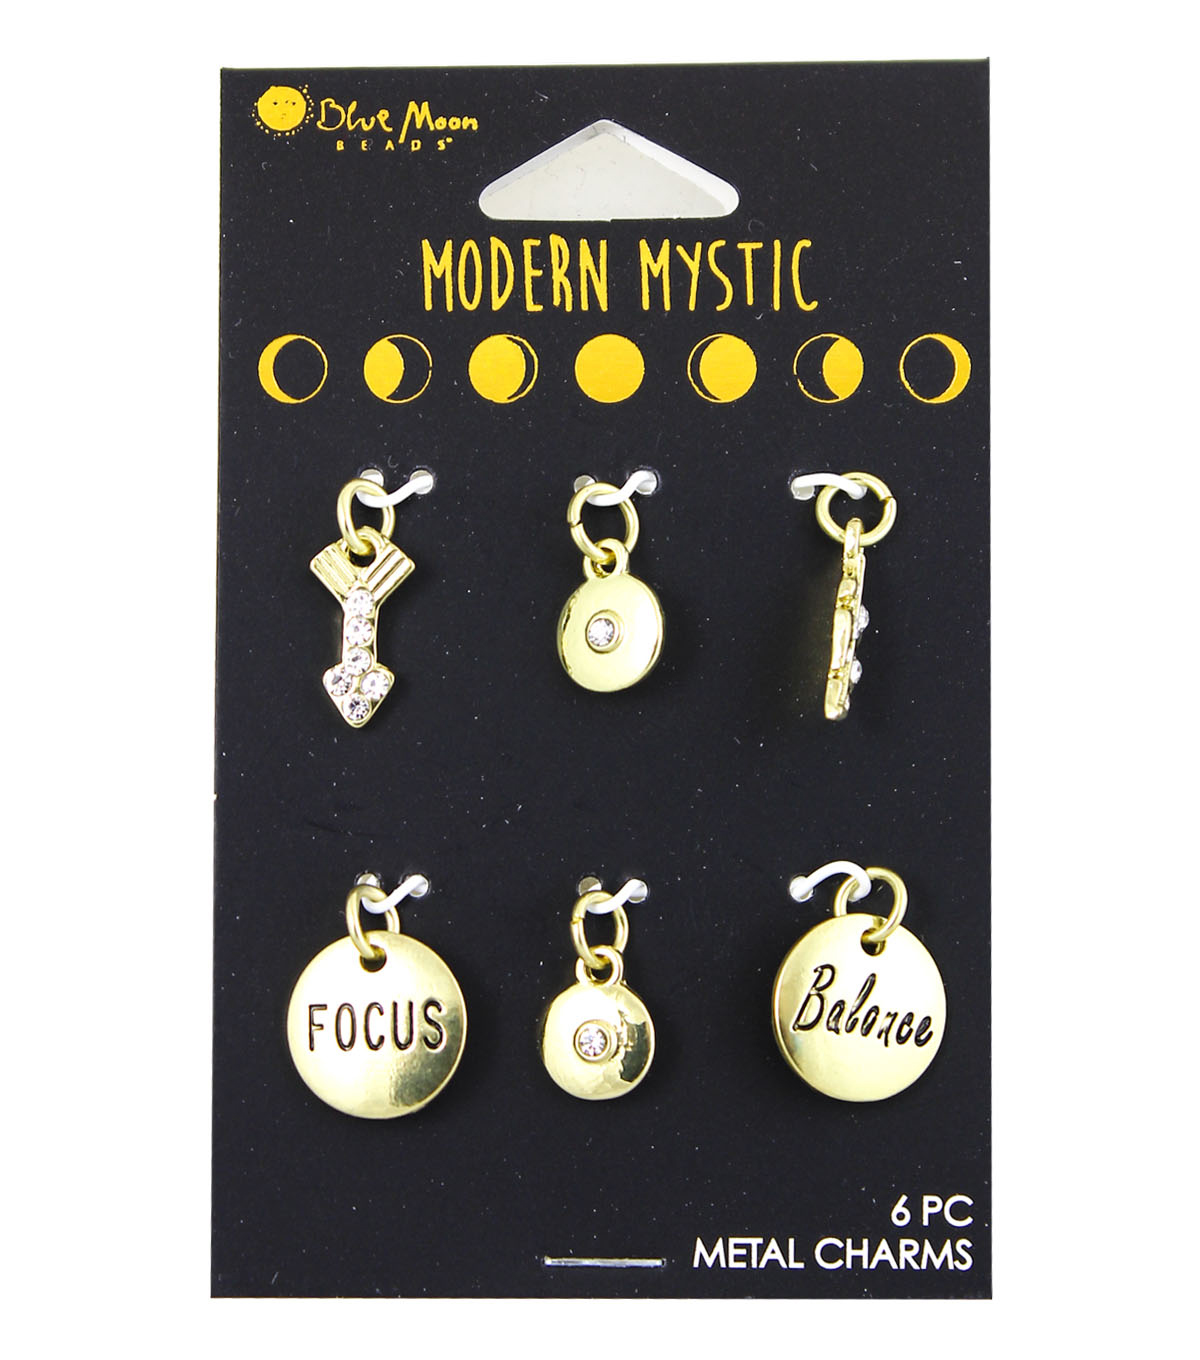 Blue Moon Beads® Modern Mystic Gold Focus & Believe Mini Charms